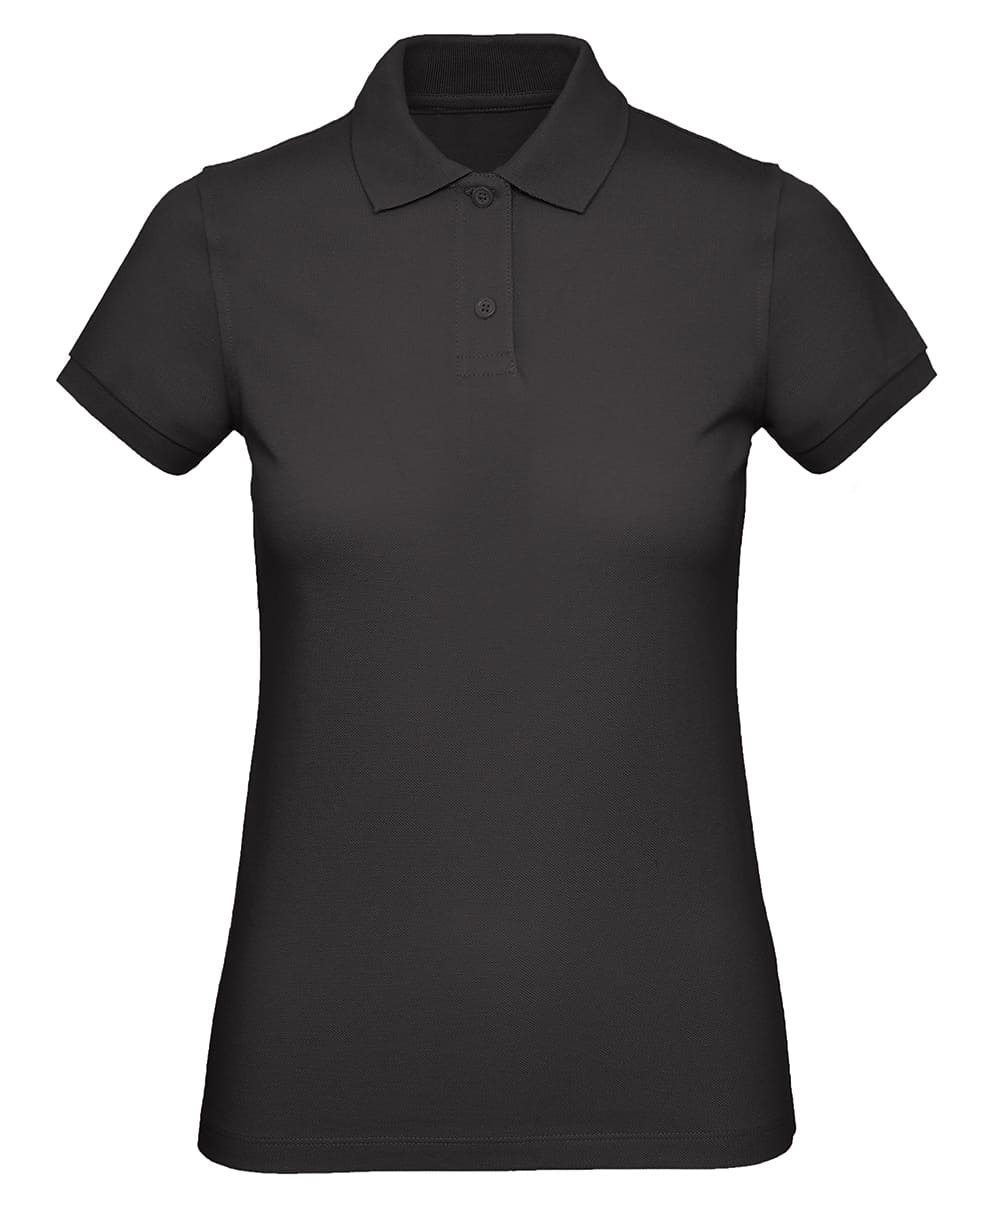 Damen/Frauen Polo T-Shirt